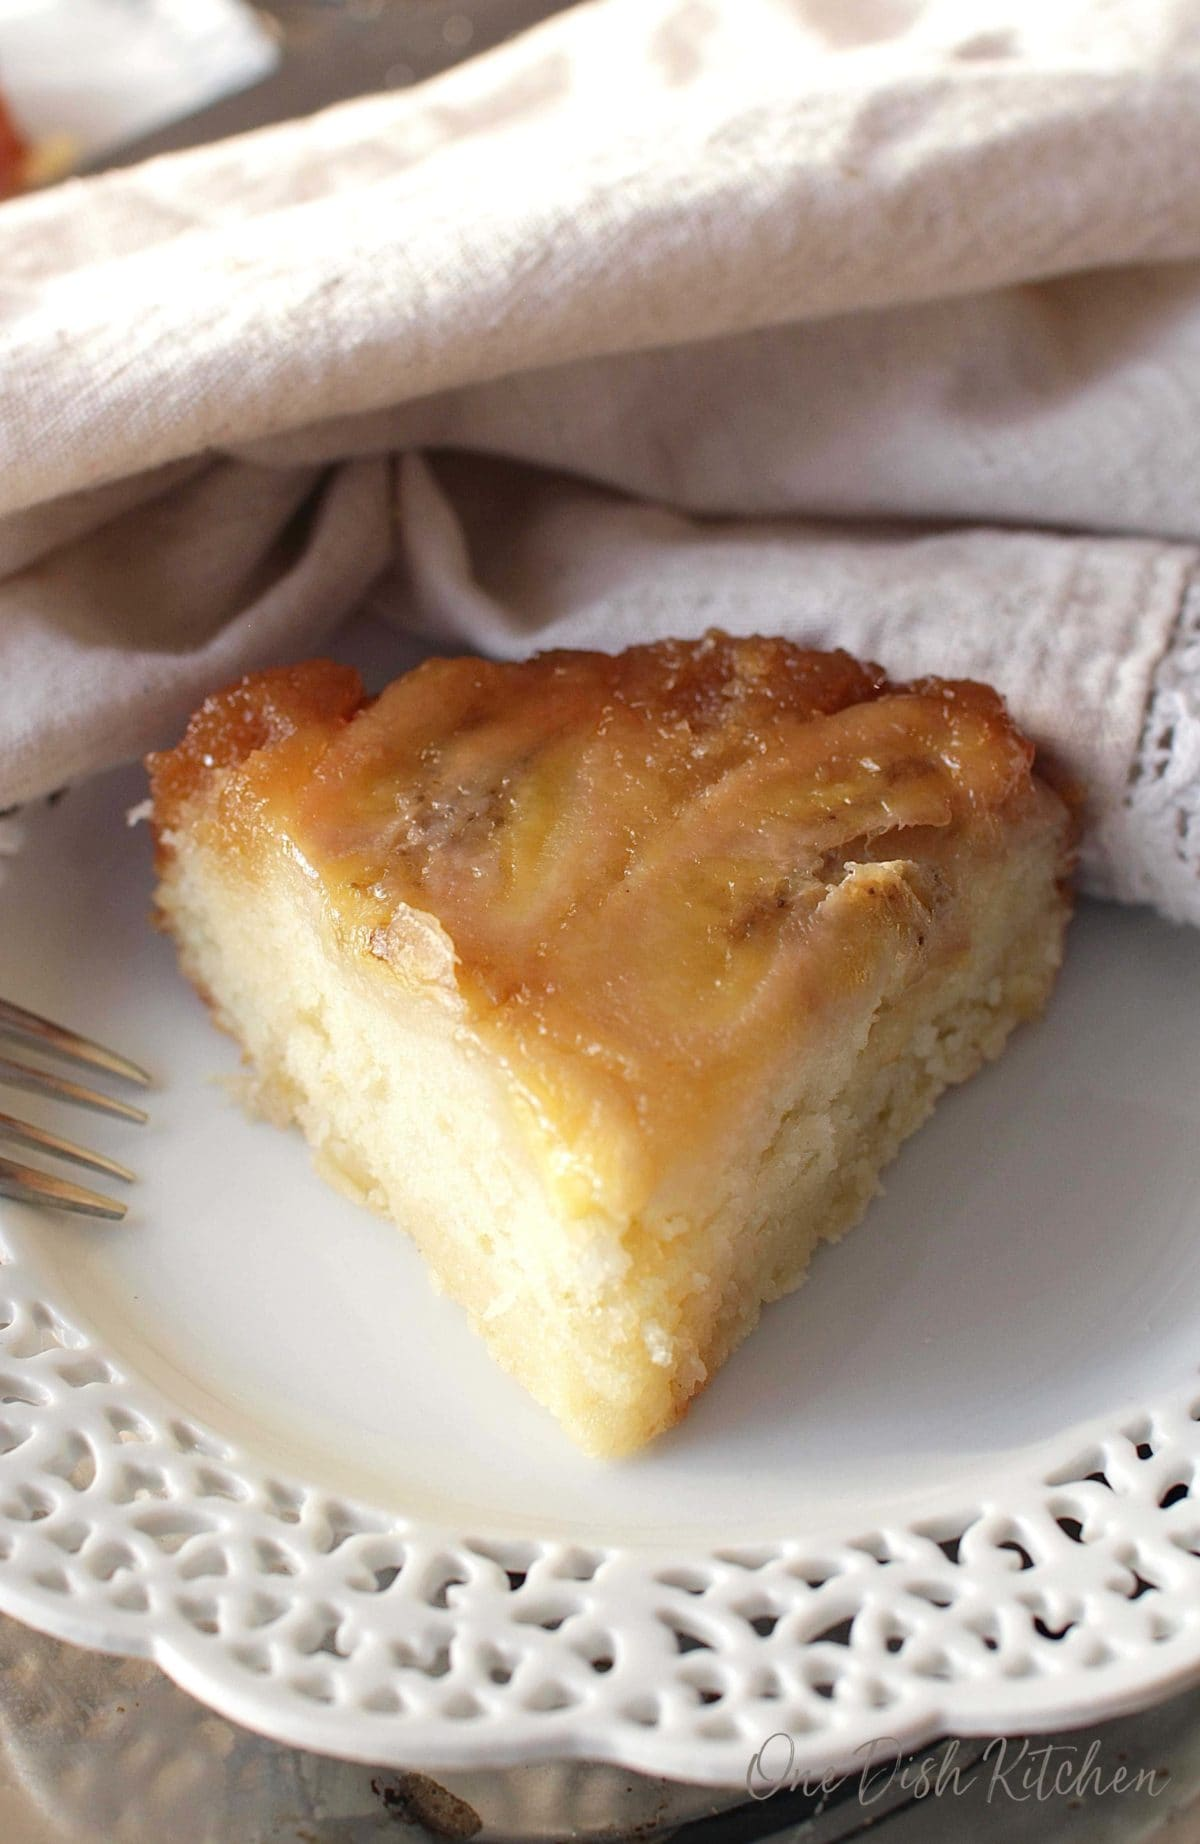 a slice of banana upside down cake on a white lace plate.